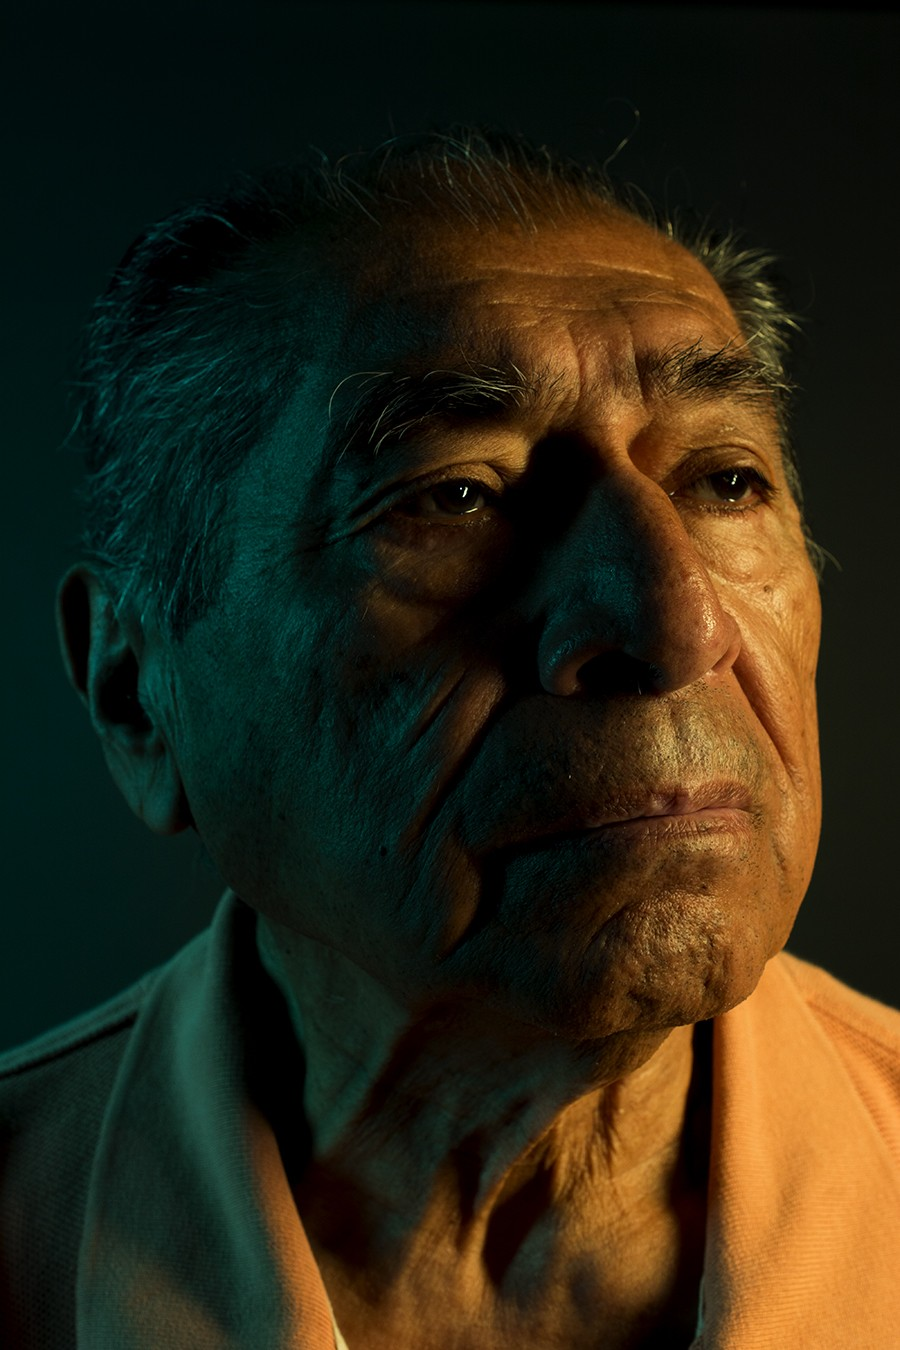 This is one of Guzman's favorite pictures of his grandfather. As the subject of a school technical assignment, all Garcia had to do was show up while Guzman created a portrait using colored gels. - GONZALO GUZMAN